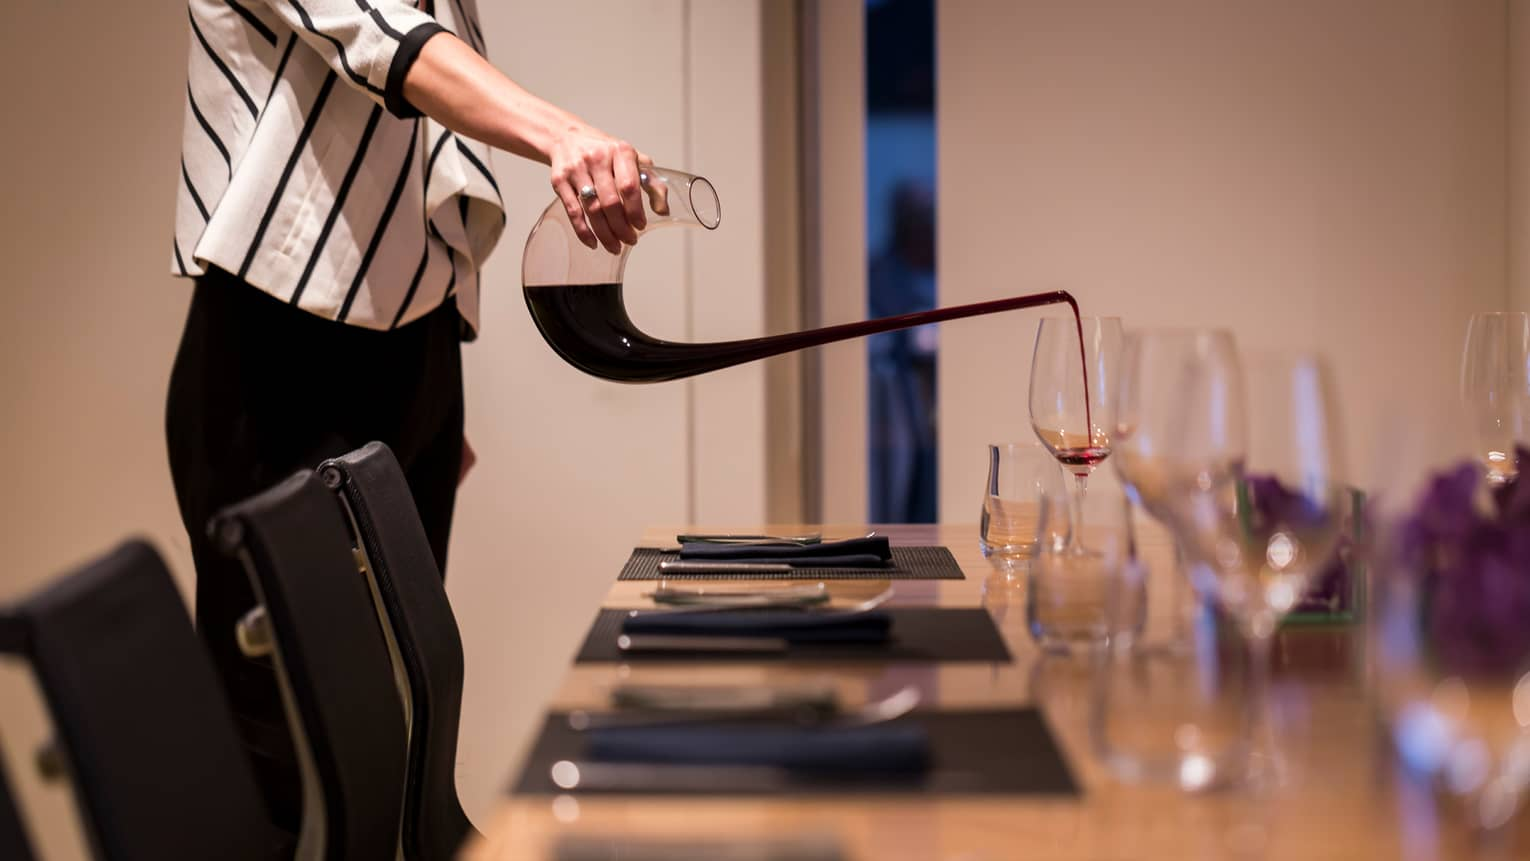 Close-up of woman in striped jacket pouring red wine into glass on meeting table